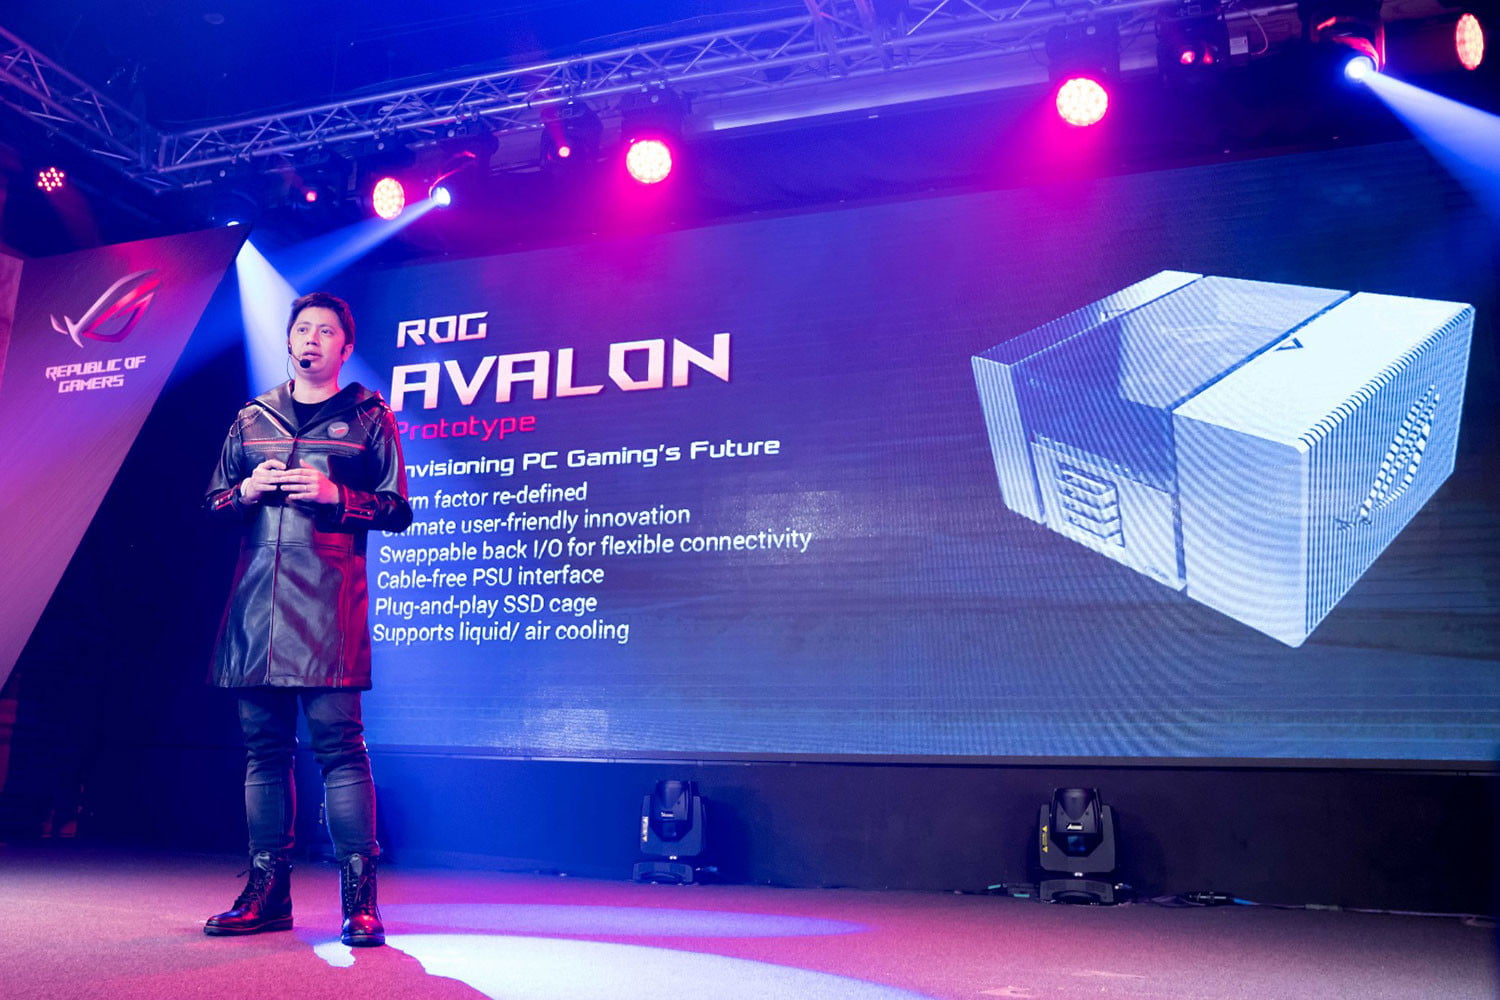 asus rog computex marketing direct derek yu unveiled the avalon  a prototype motherboardchassi